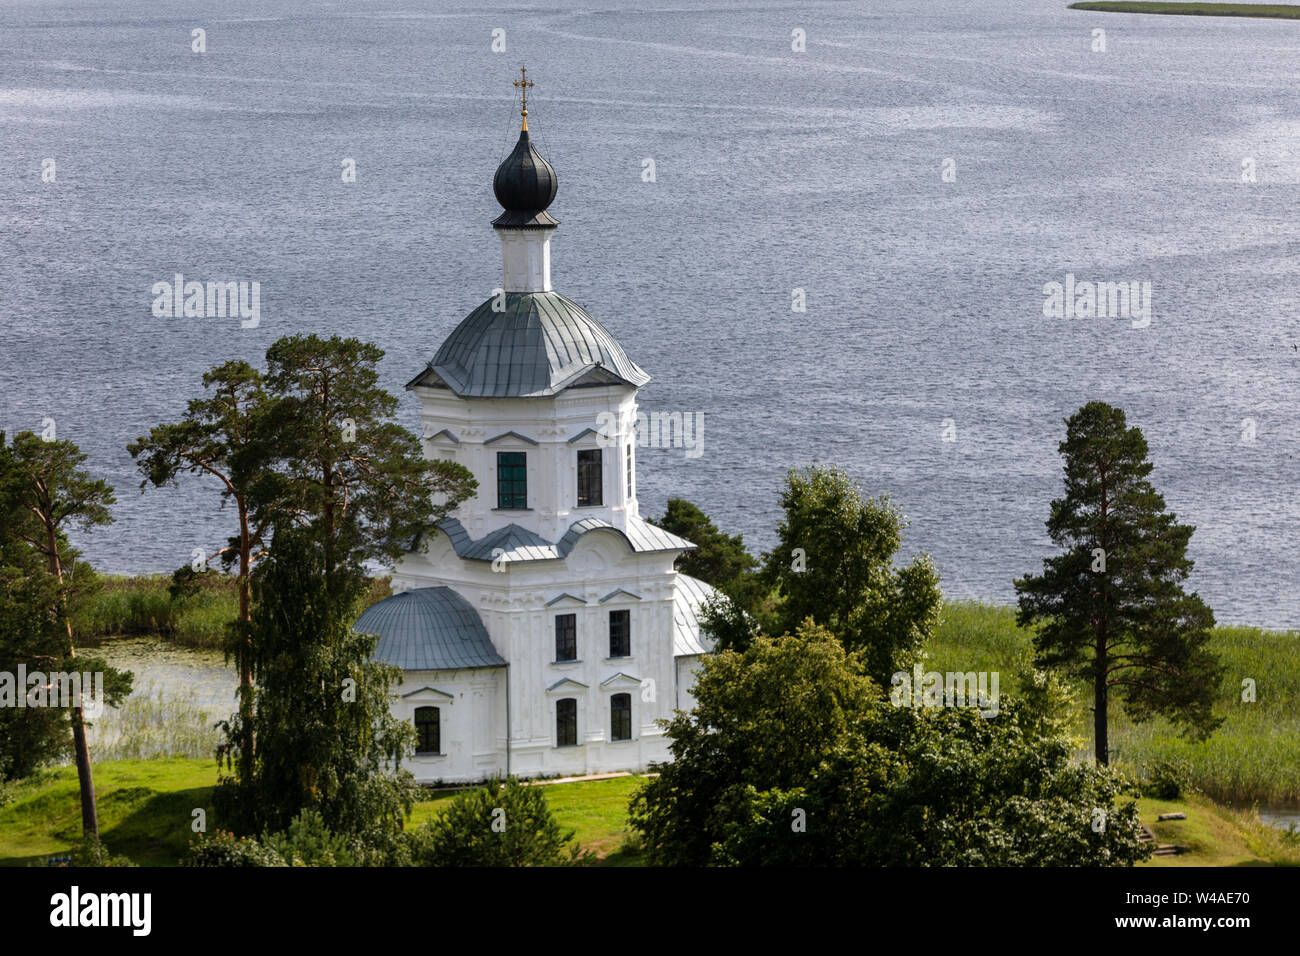 Church Of The Exaltation Of The Holy Cross of Nilov Monastery is located on the southwest side of Stolobny island, Tver region, Russia Stock Photo